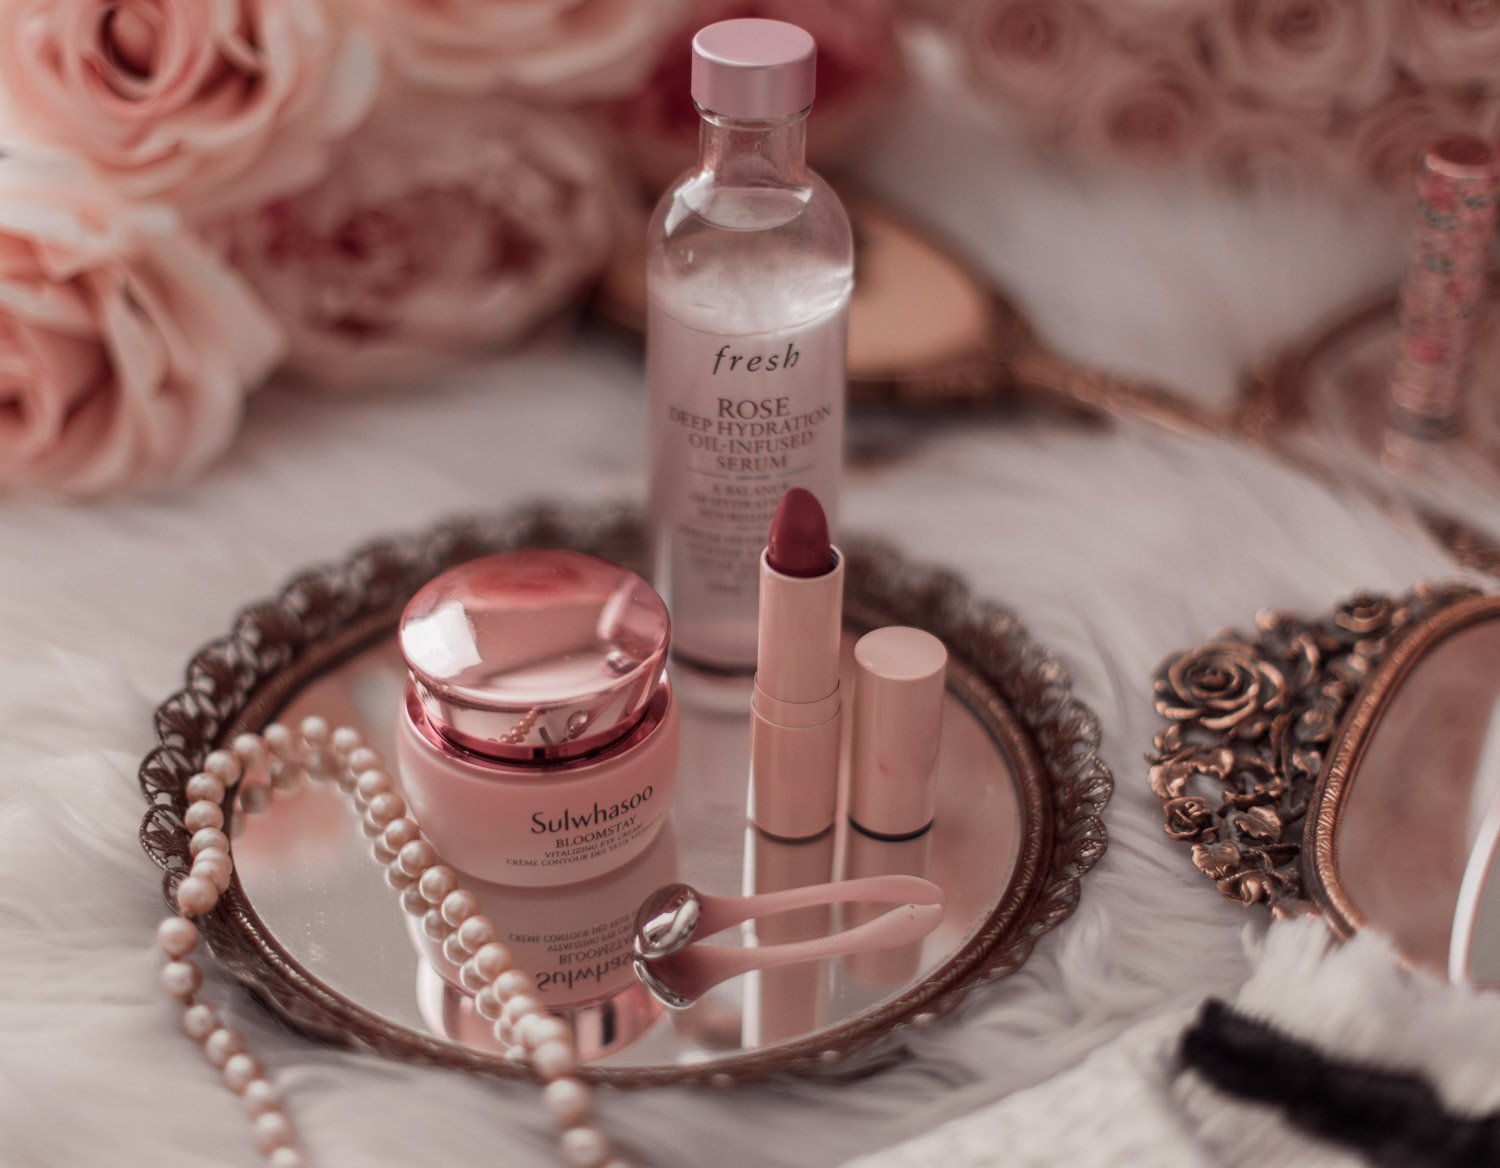 Elizabeth Hugen of Lizzie in Lace shares her must-have pink beauty products including the sulwhasoo bloomstay eye cream